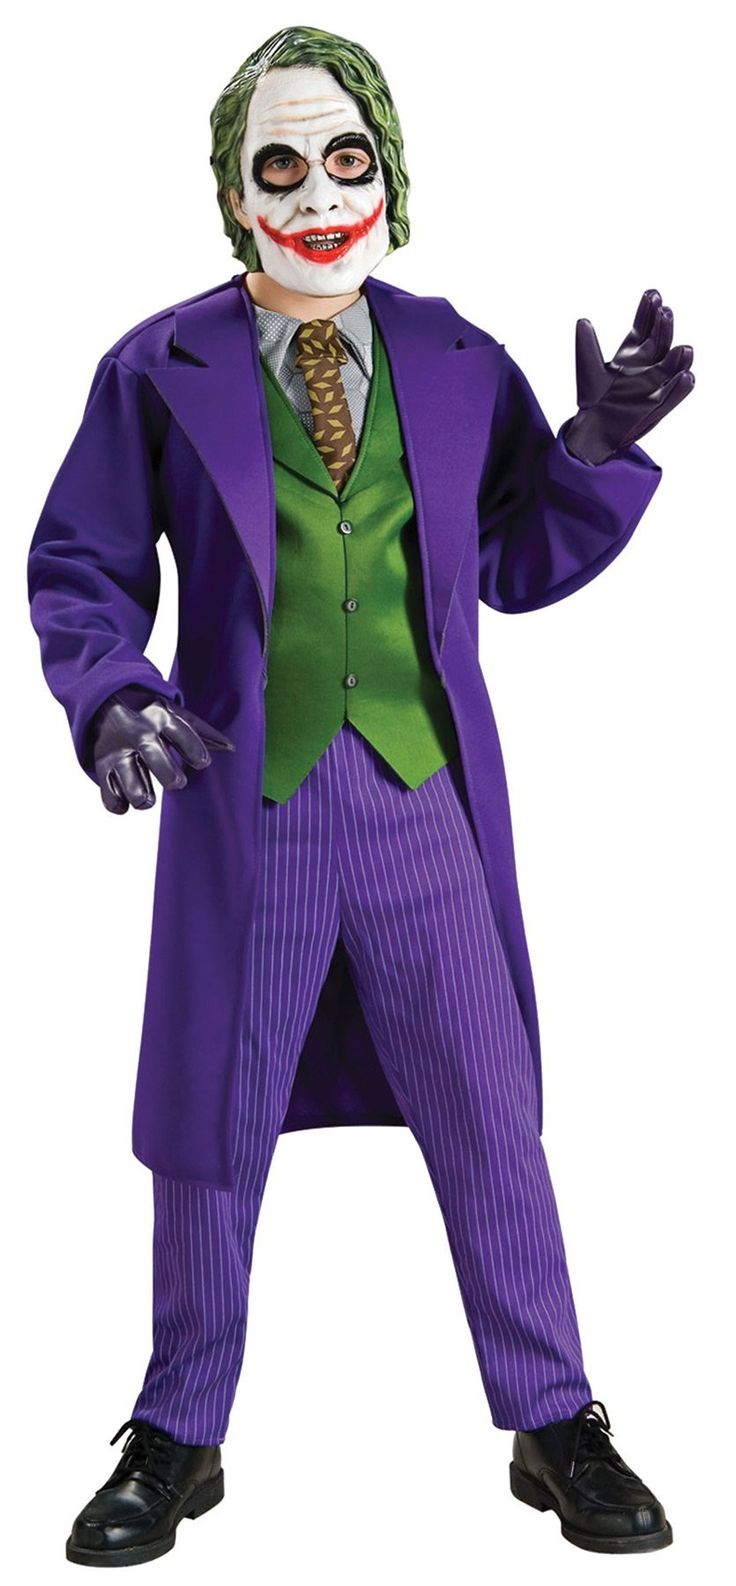 Deluxe Joker Costume - Small. The Deluxe Joker kids costume includes the jacket with attached shirt, tie and vest, pants and mask. Our Deluxe Joker comes in child sizes Small, Medium, Large. This Deluxe Joker is an officially licensed Batman The Dark Knight costume. Purple Joker kids gloves are sold separately from this Deluxe Joker costume for boys.